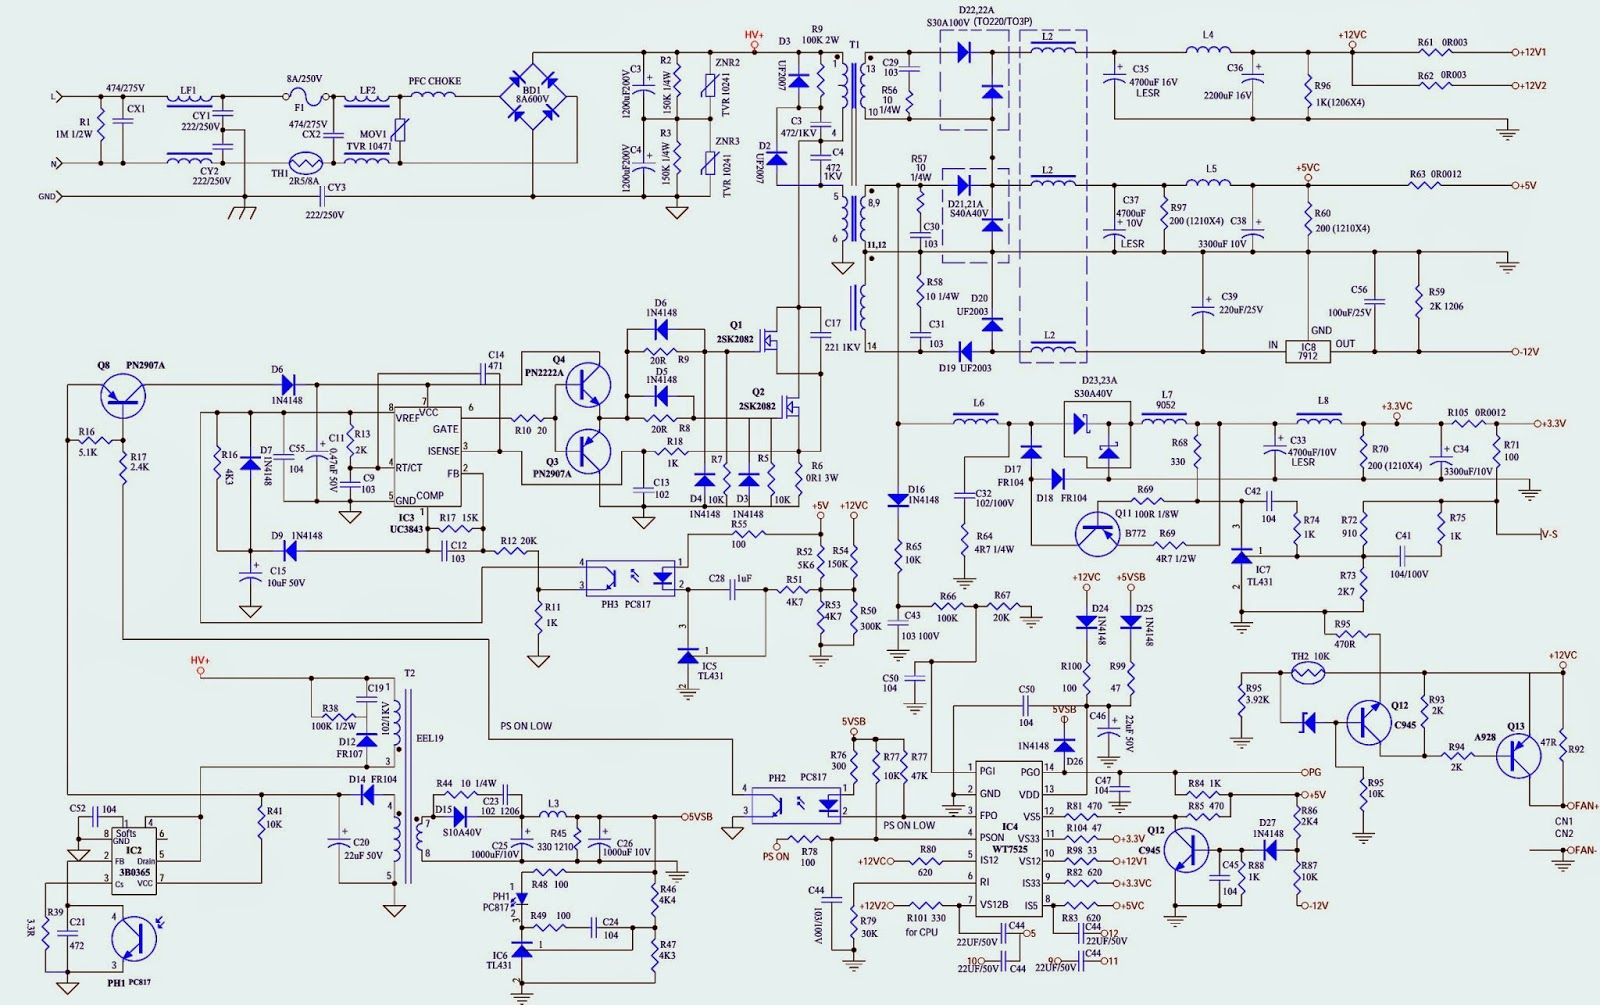 300w Atx Power Supply Schematic Diagrams Astec Wiring Diagram Unusual Schematics Photos Electrical Circuit